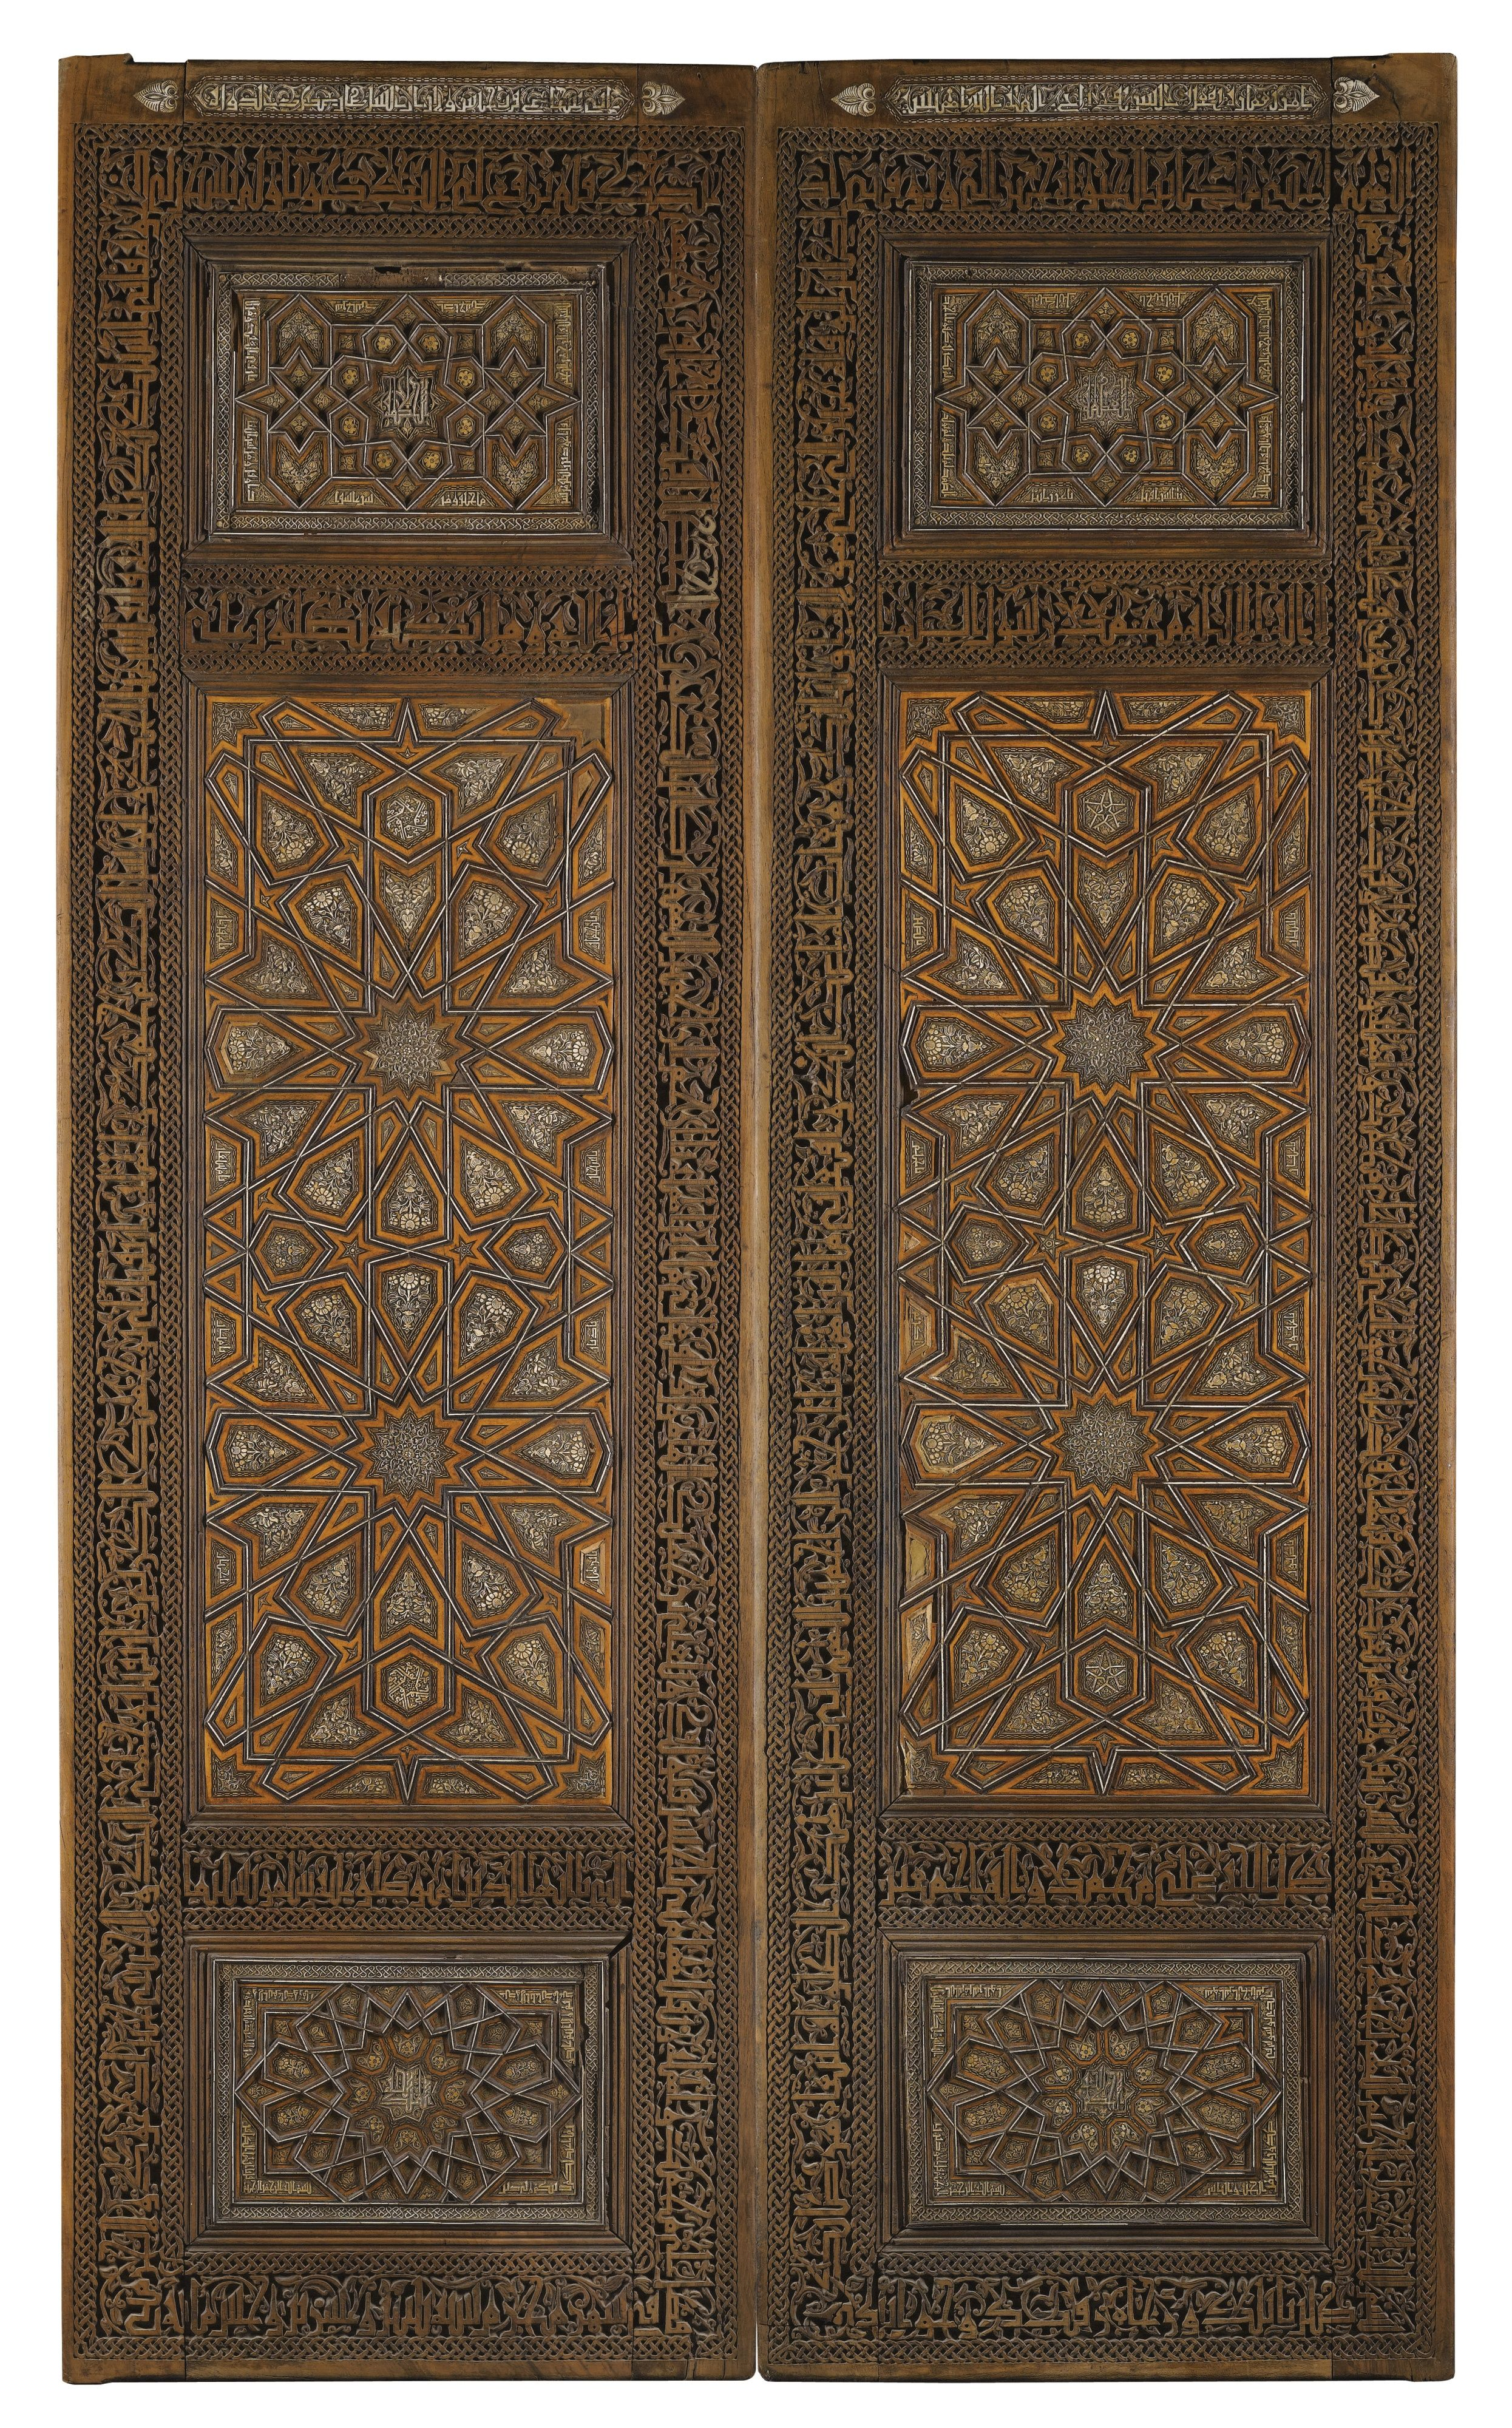 An Impressive Pair Of Ivory Inlaid Wooden Doors Persia